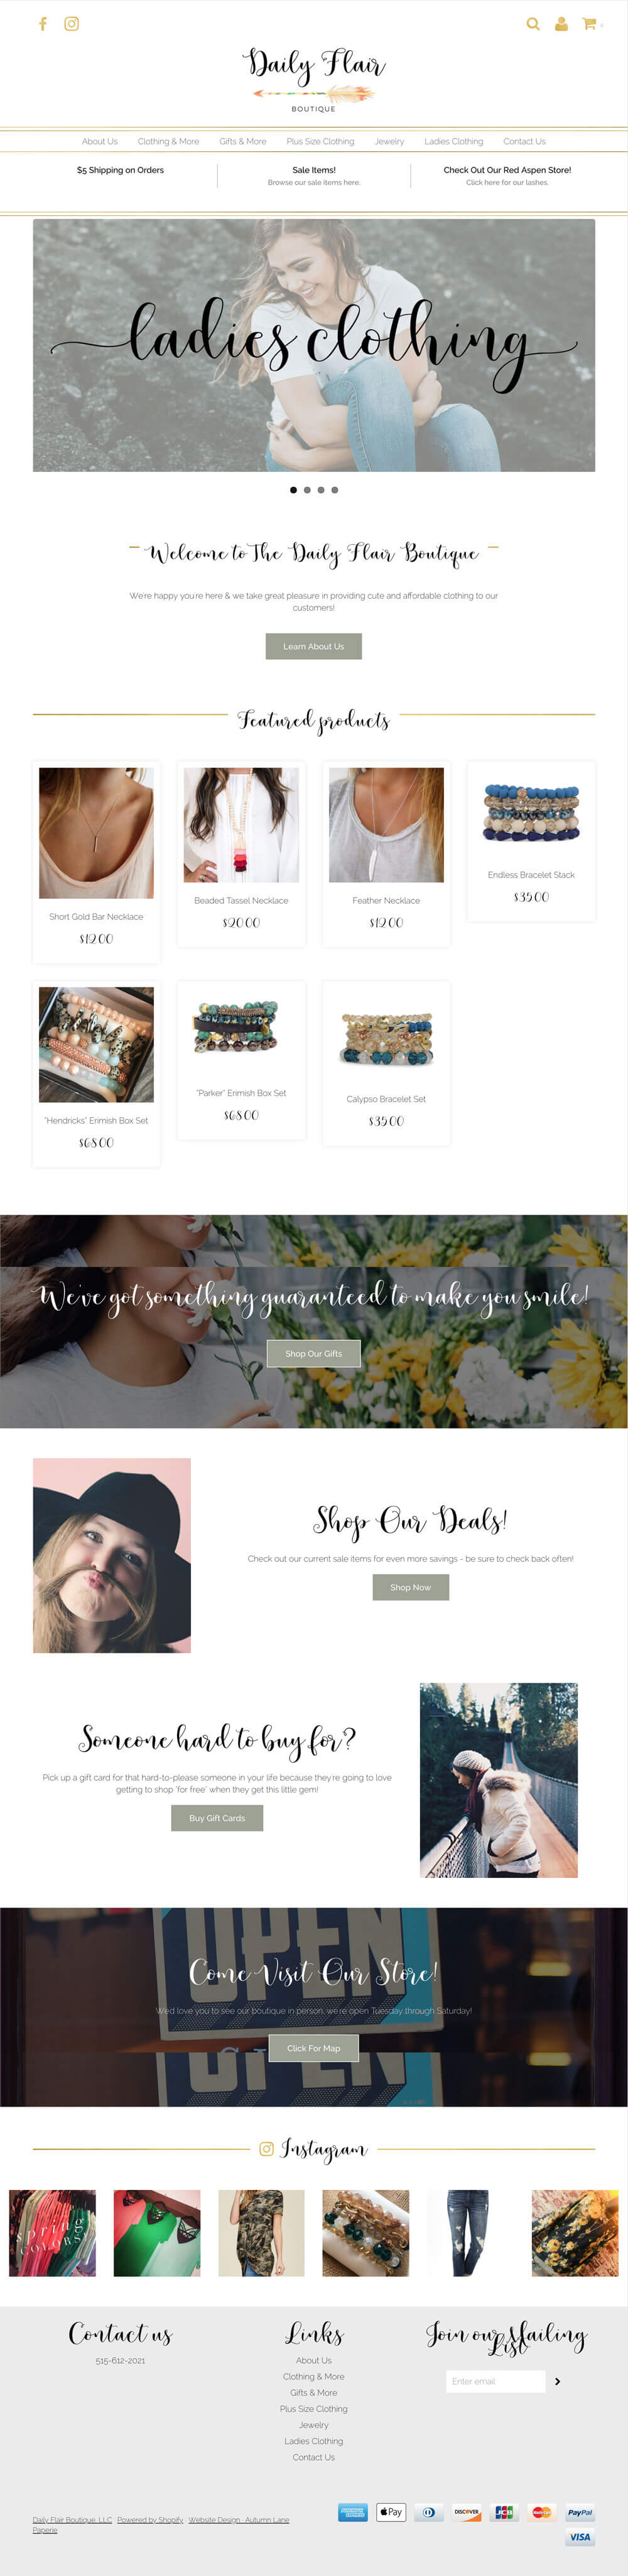 Daily Flair Boutique Website